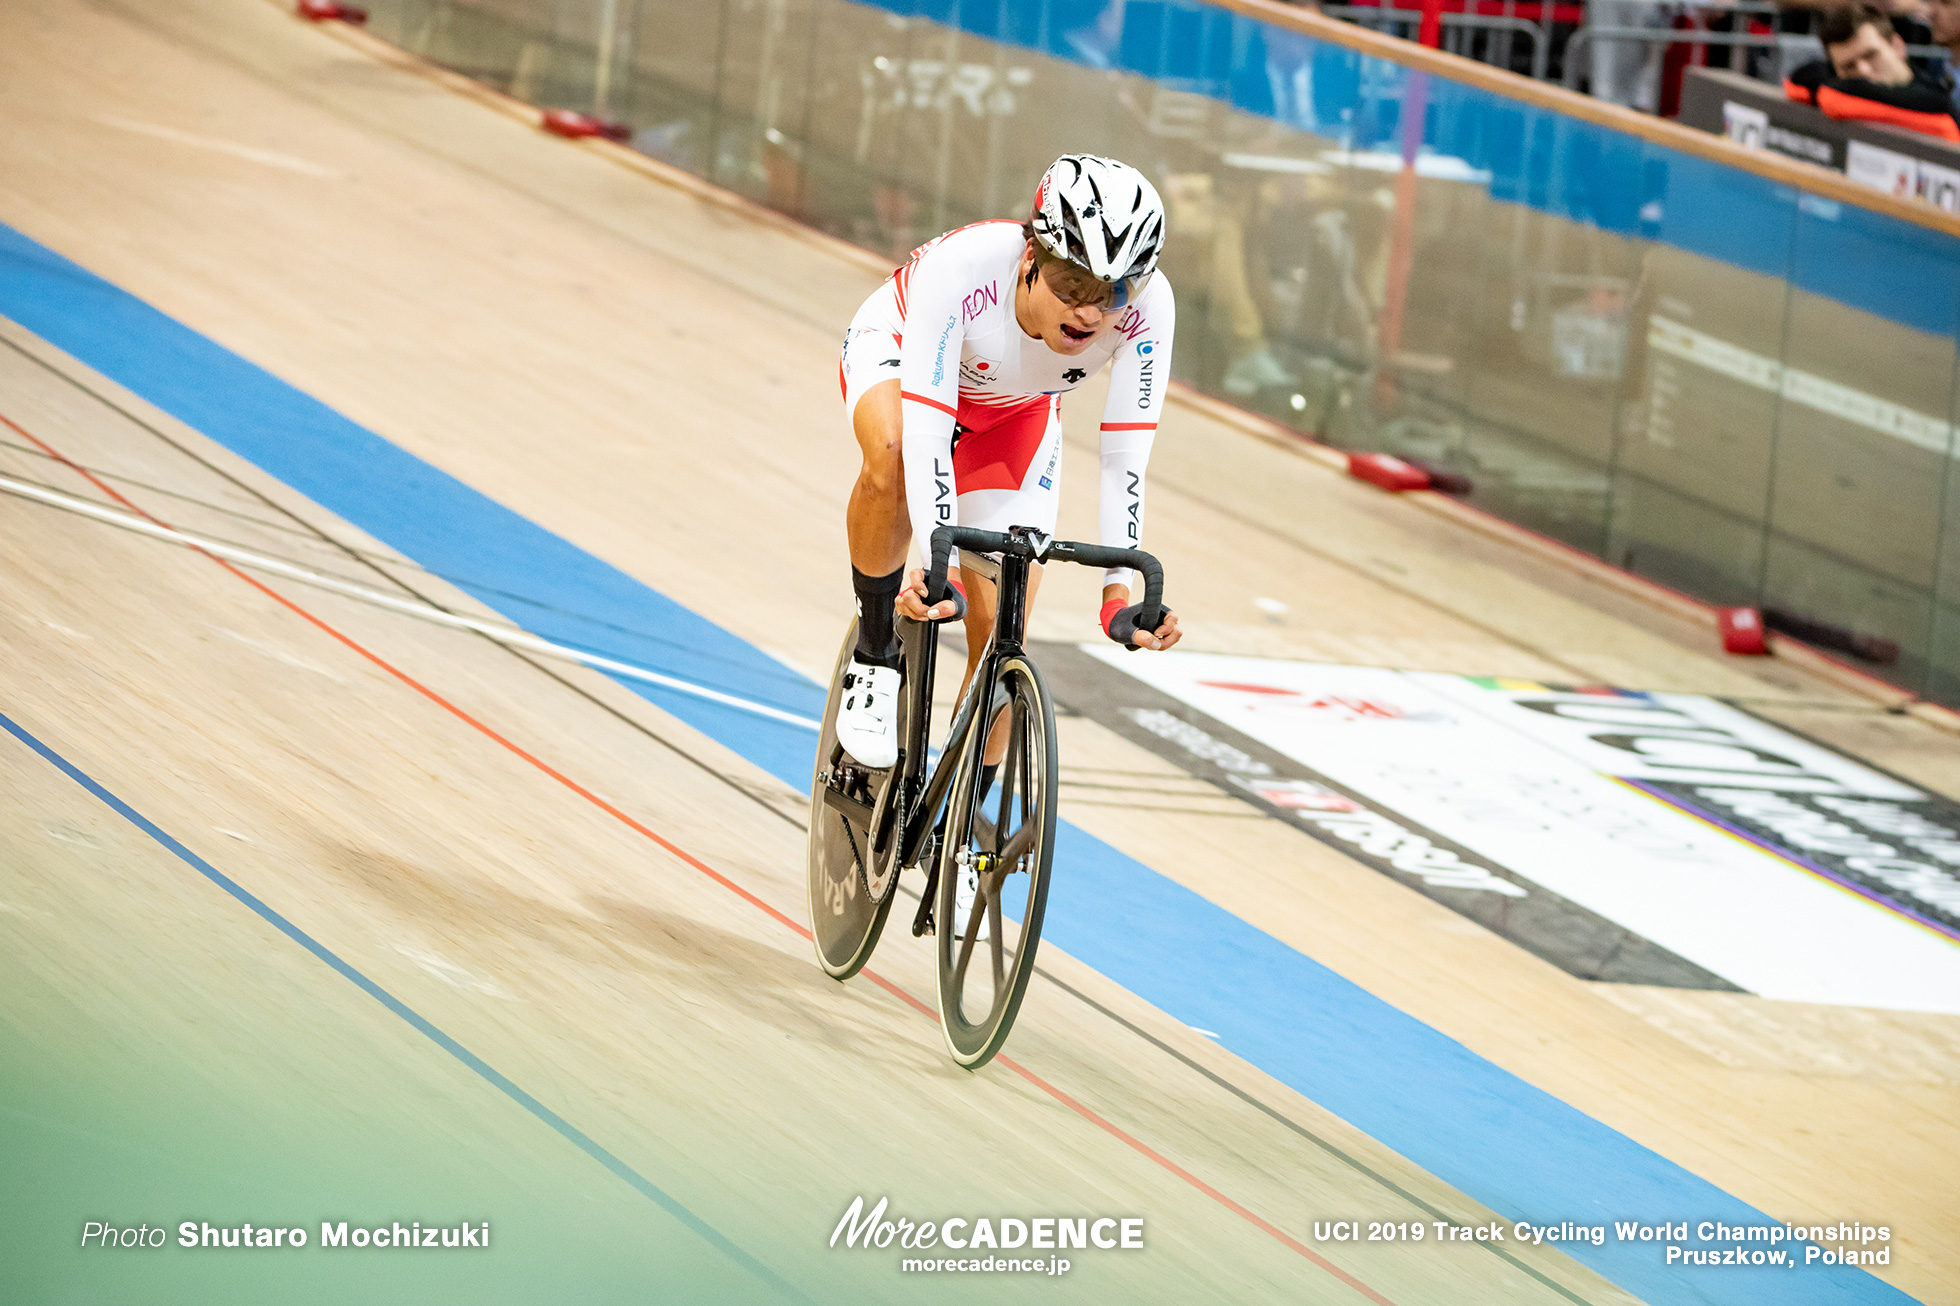 Men's Omnium Tempo Race / 2019 Track Cycling World Championships Pruszków, Poland